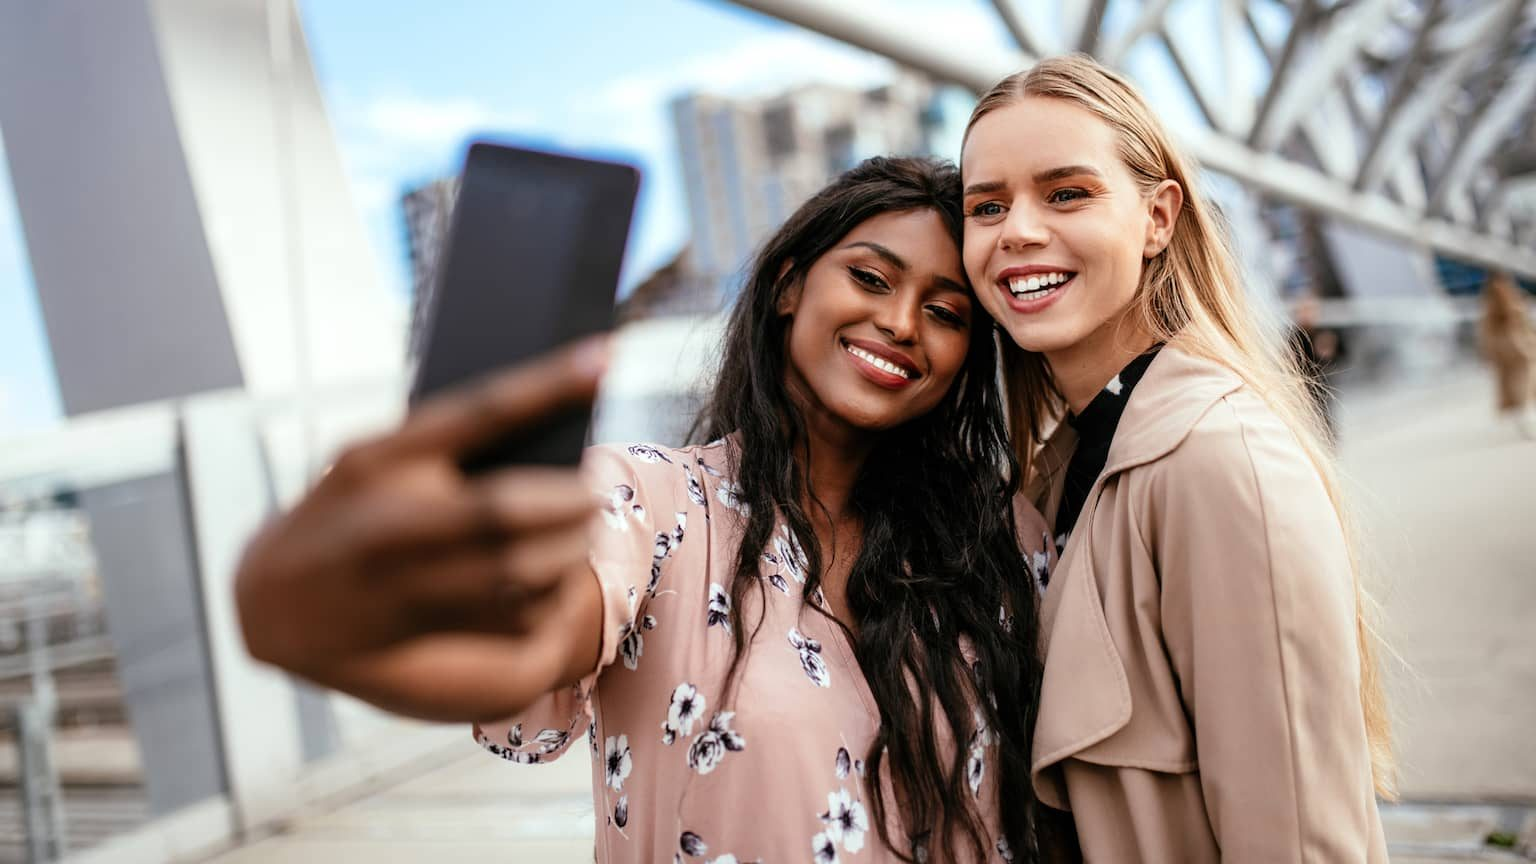 Two young women smiling at a phone while taking a selfie with straight teeth